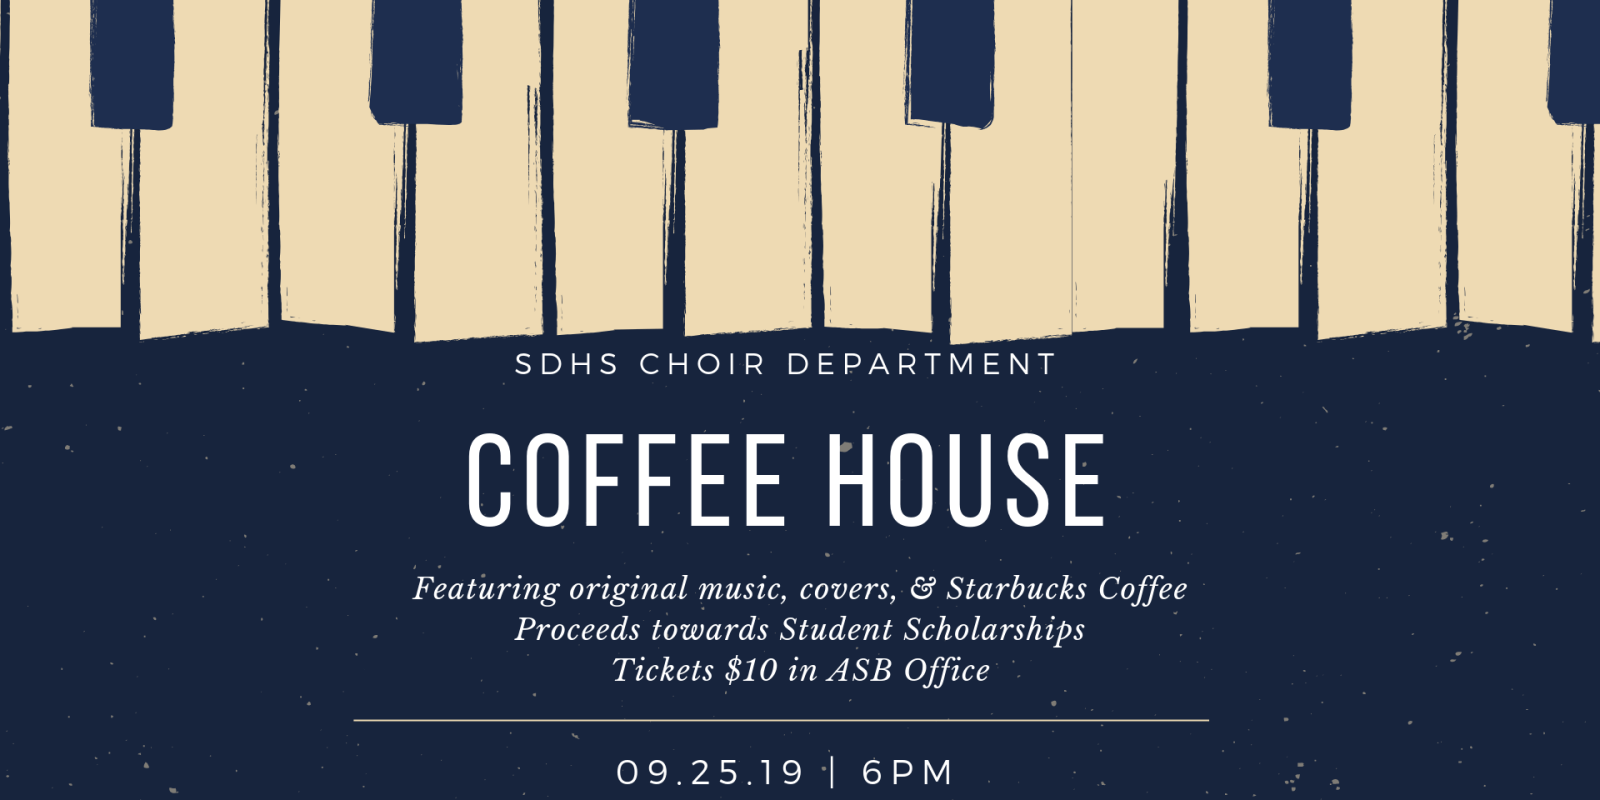 SDHS Coffee House 9/25